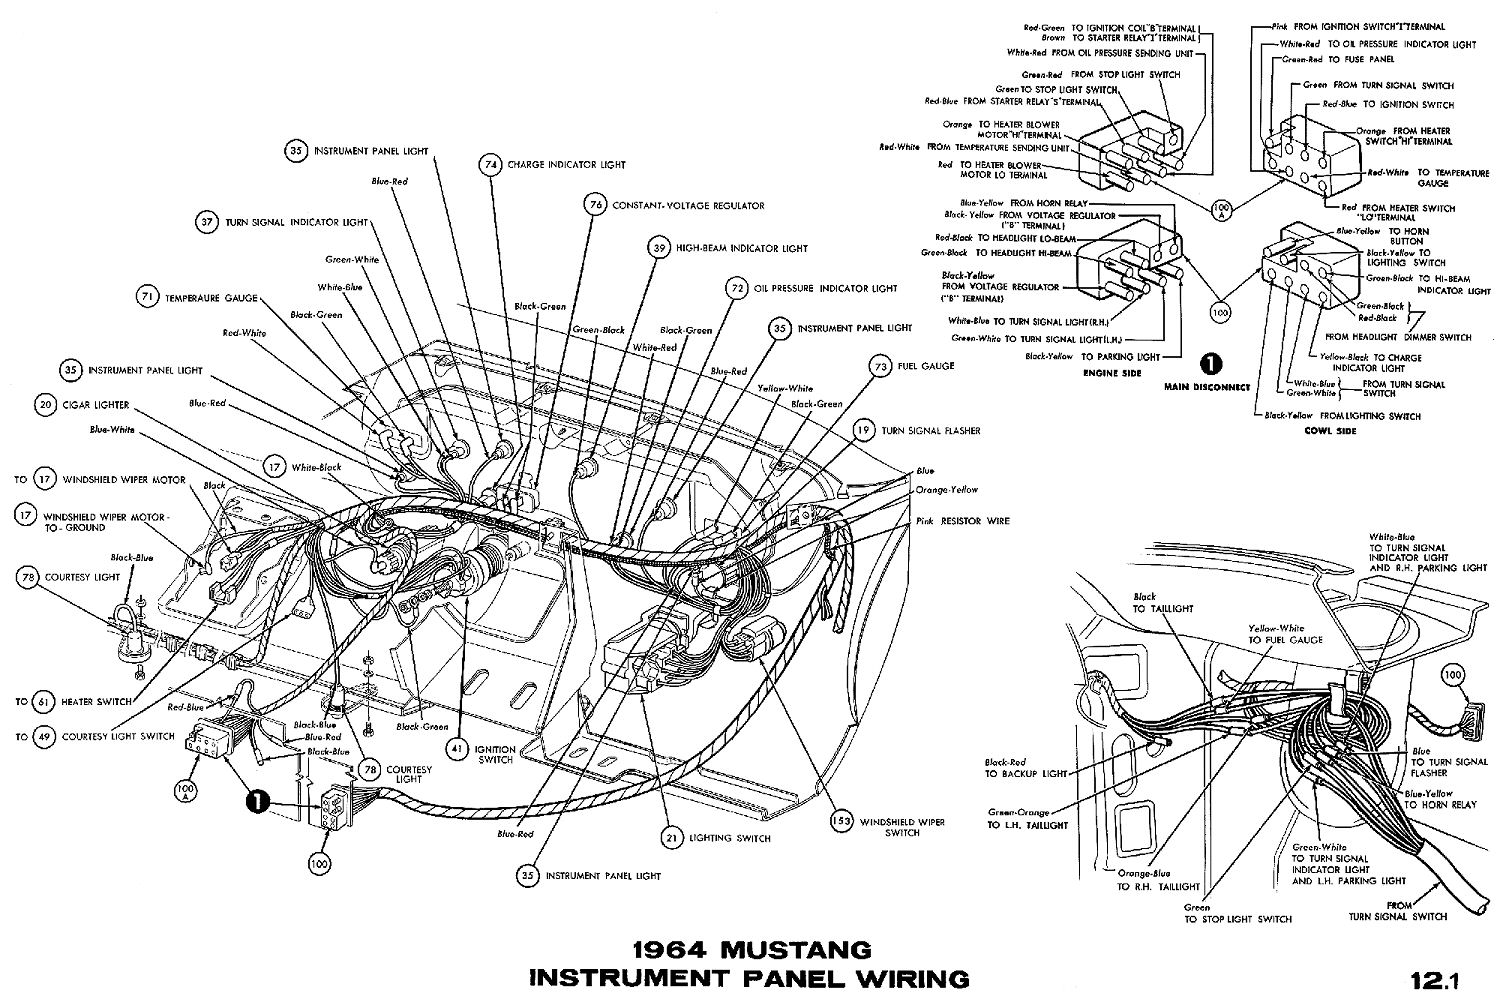 1968 Mustang Instrument Wiring Diagram Data 70 Chevelle Headlight 1964 Diagrams Average Joe Restoration 1969 Fuses